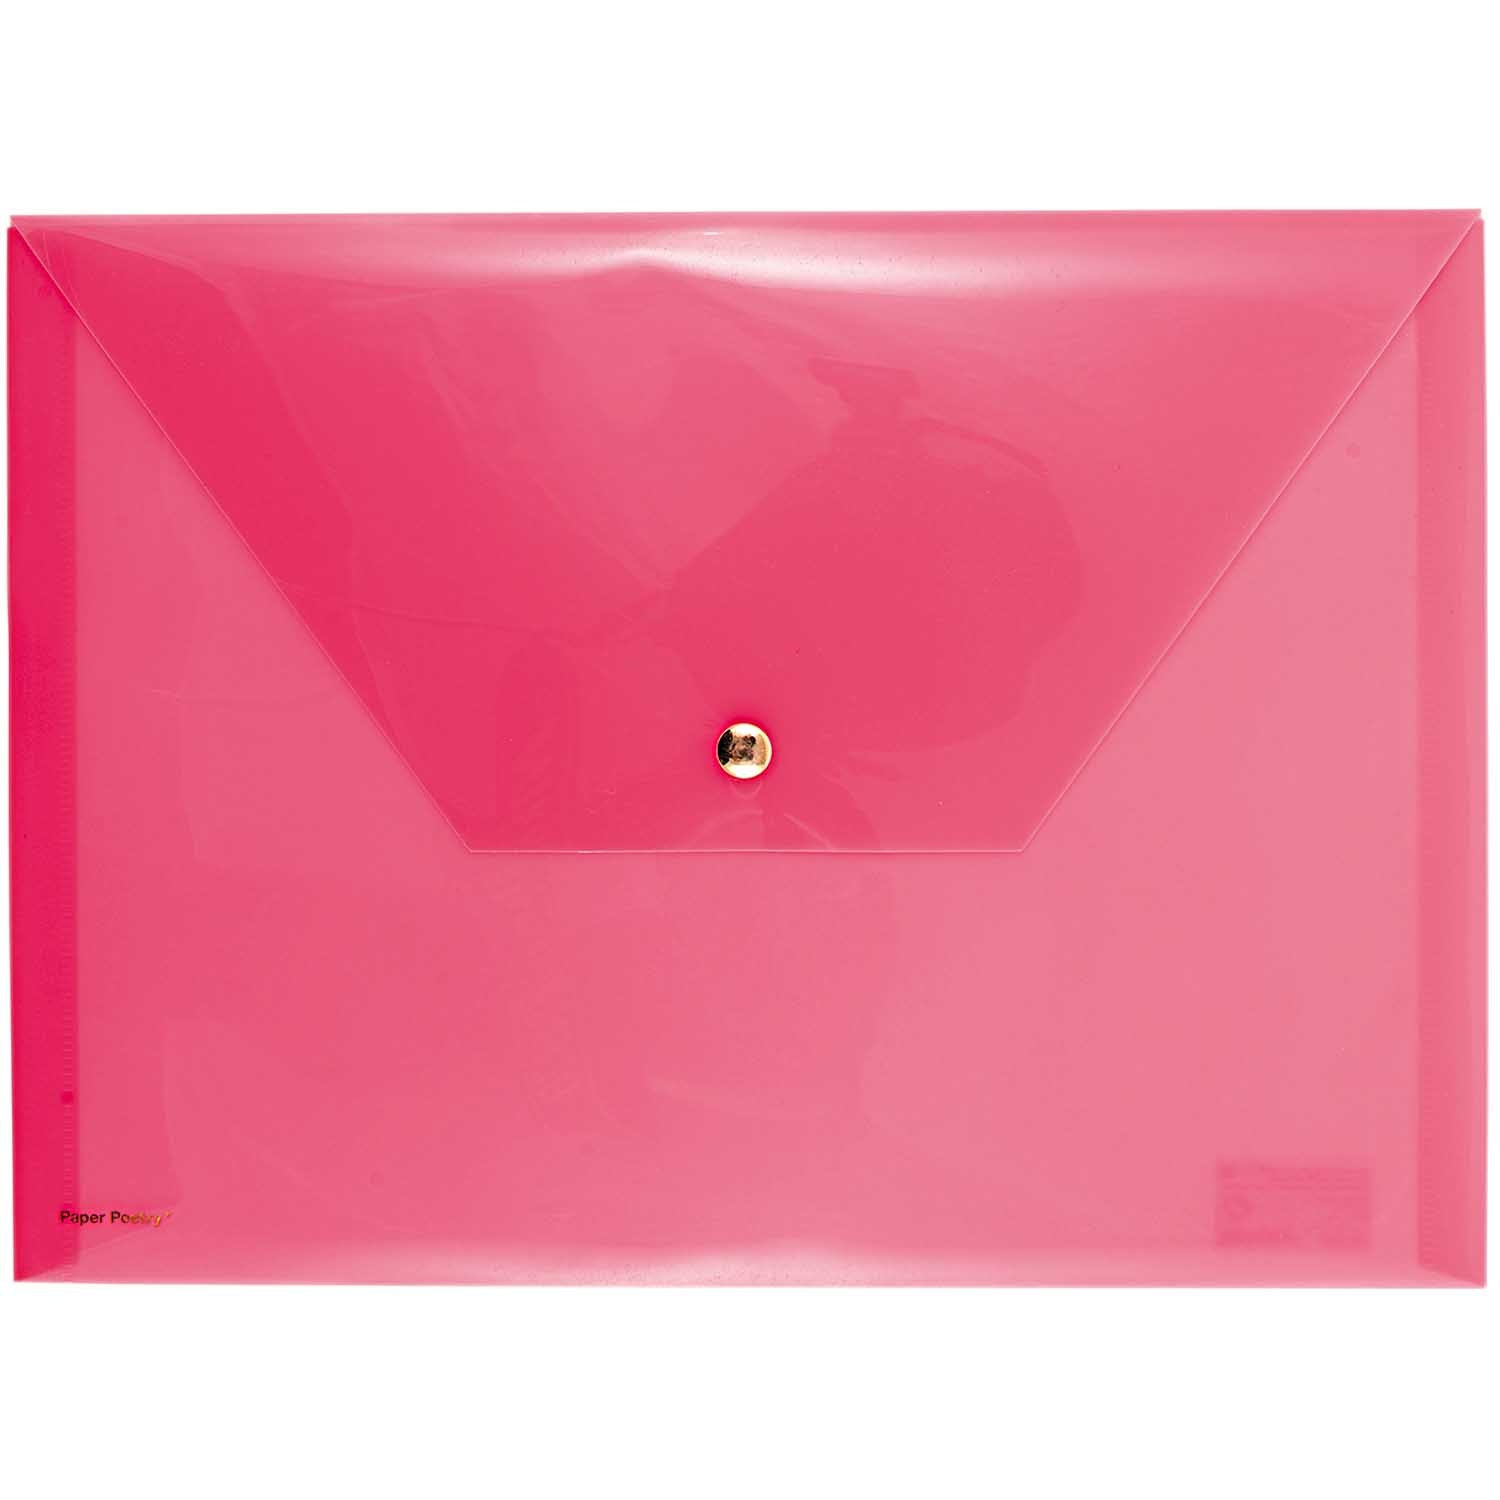 Rico NAY DOCUMENT FOLDER, NEON PINK  24 X 33 CM